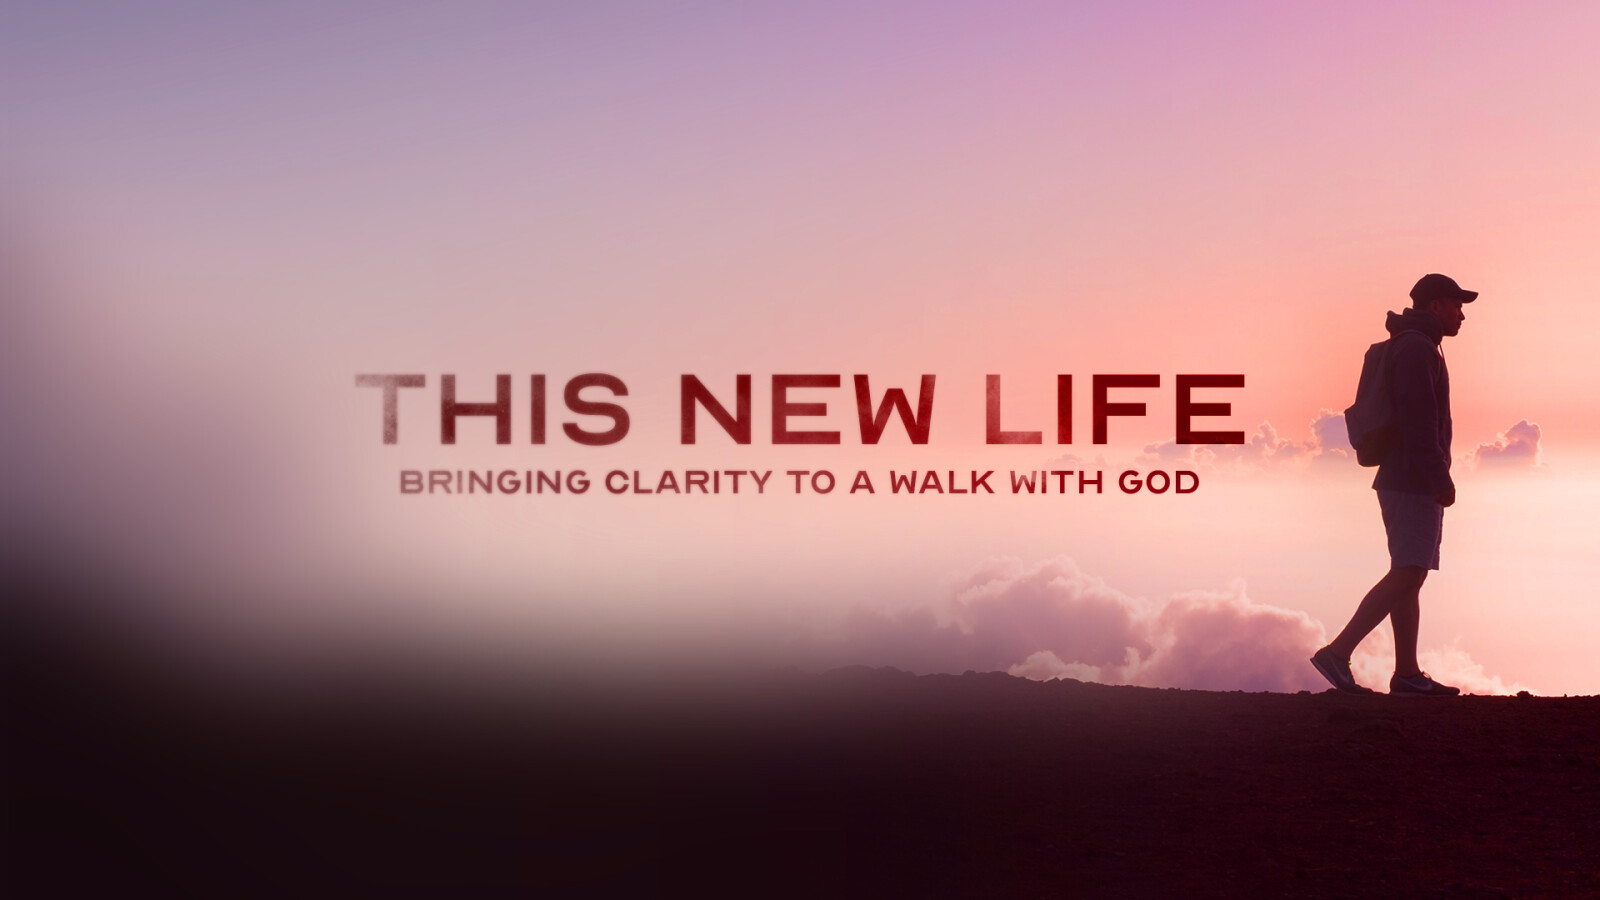 This New Life